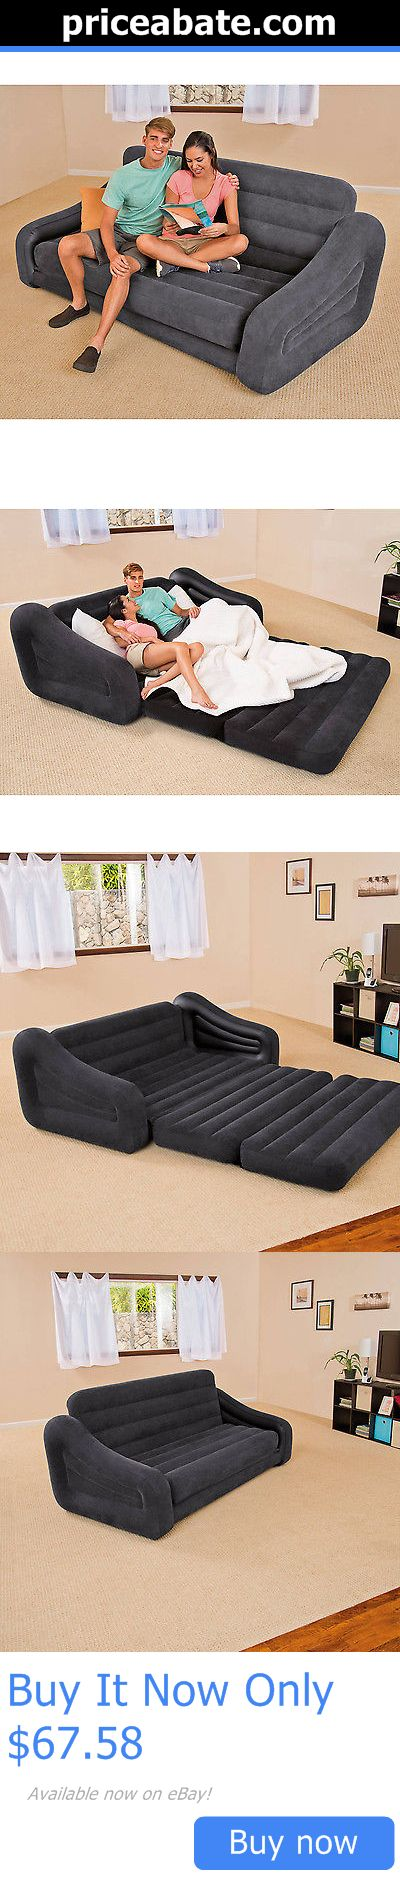 furniture: Couch Bed Sofa Sectional Sleeper Futon Living Room Furniture Loveseat Guest New BUY IT NOW ONLY: $67.58 #priceabatefurniture OR #priceabate